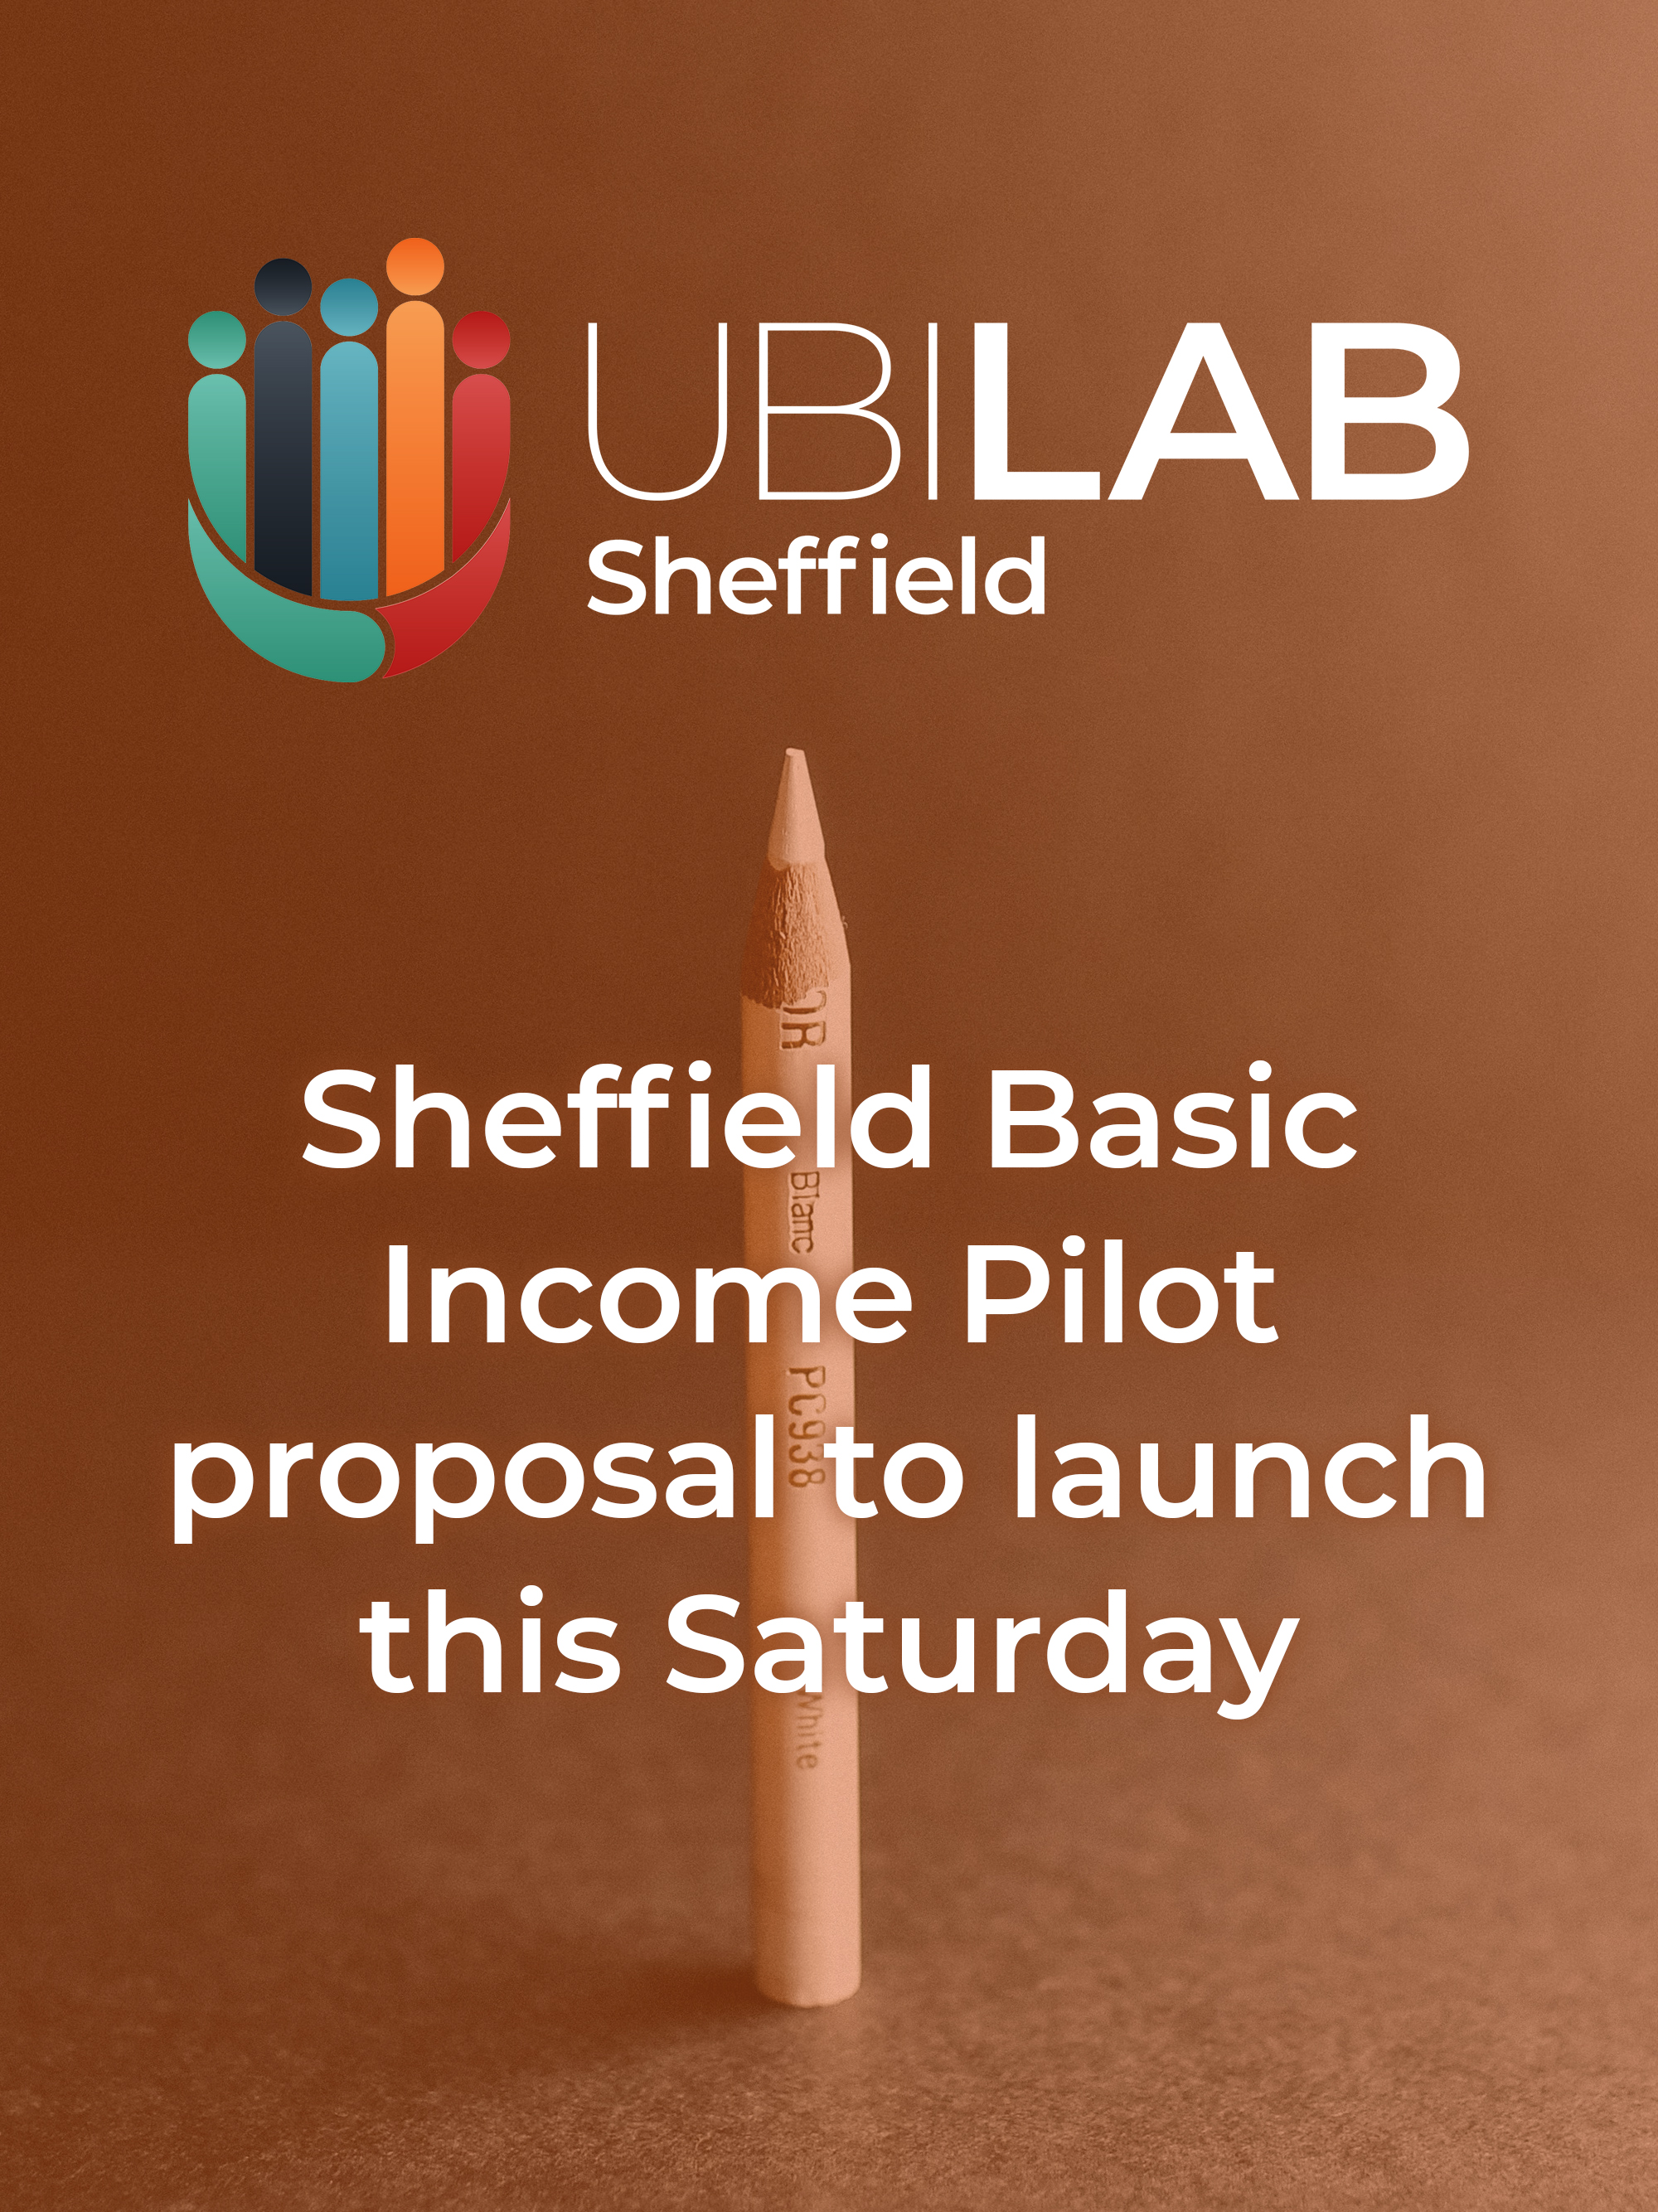 Sheffield Basic Income Pilot proposal to launch this Saturday - 5th Mar 19 - An event this Saturday in Sheffield is bringing together activists from across the UK campaigning for the idea of a basic income.